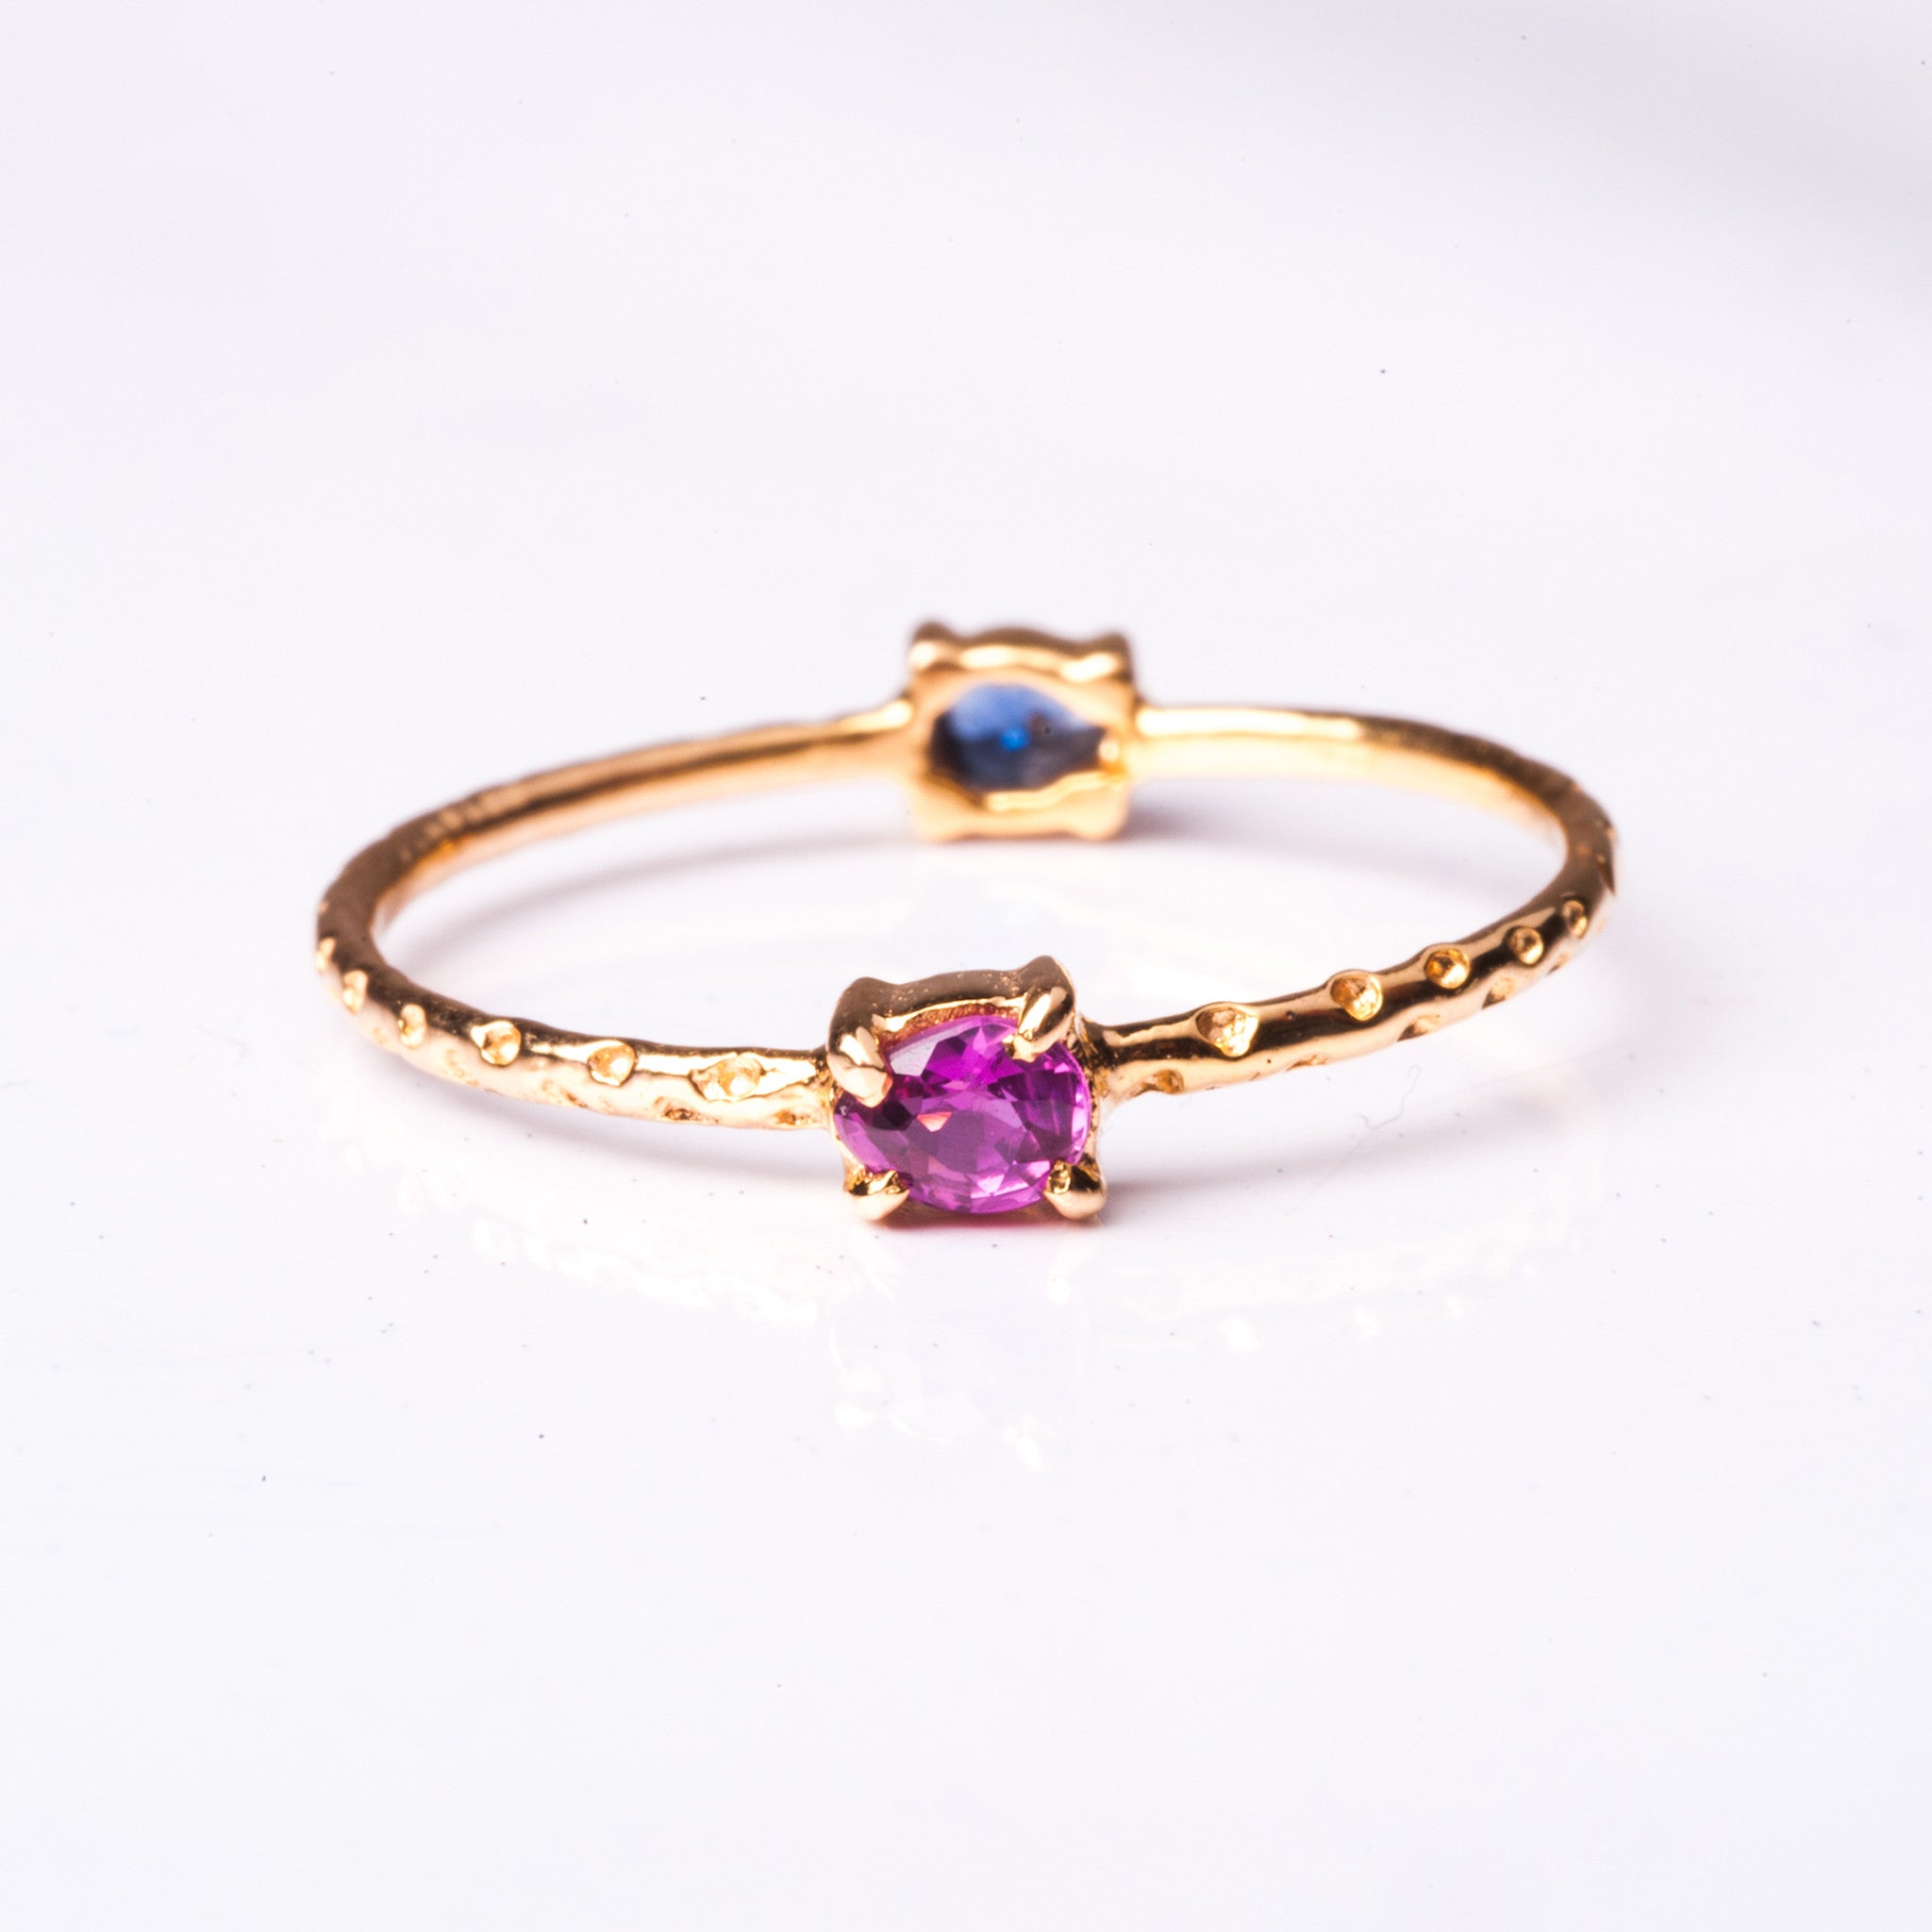 Double Gem Flip Ring - Pink Garnet & Blue Tourmaline